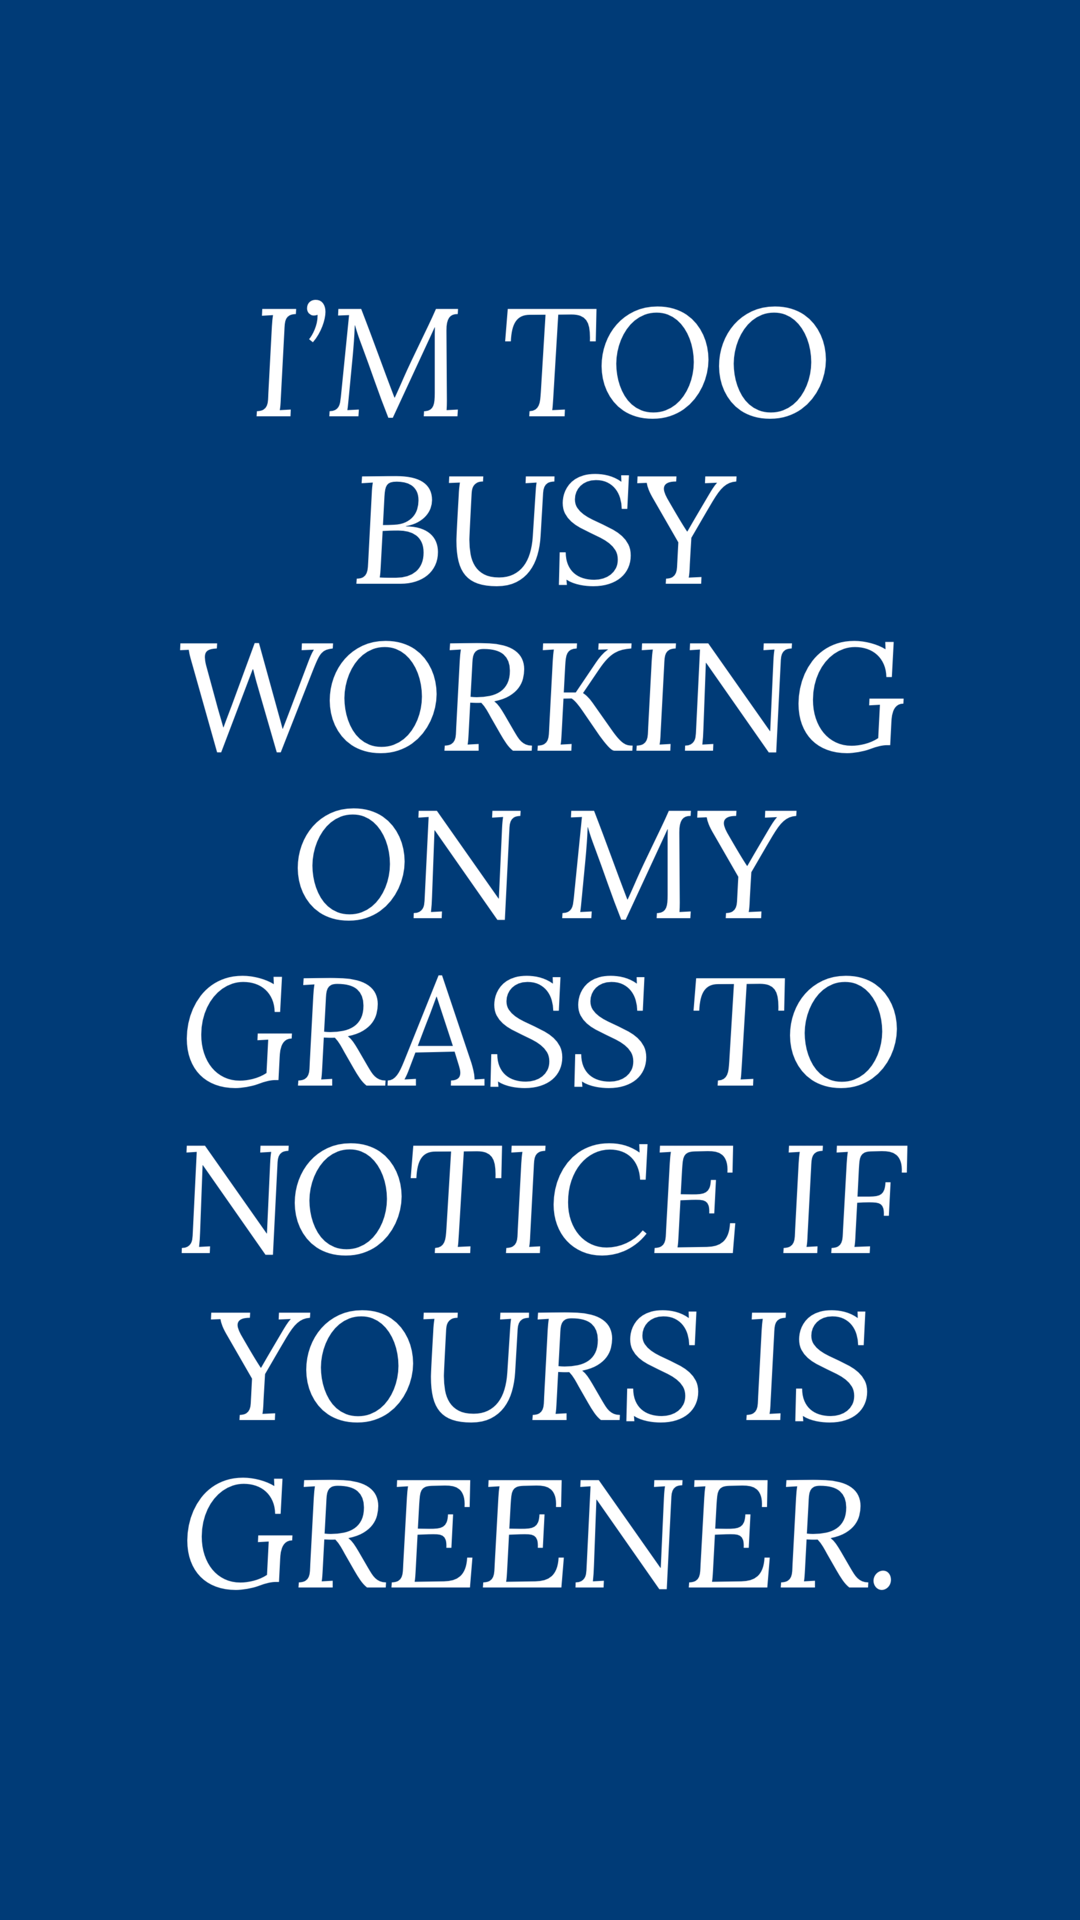 Inspirational quotes, worry about yourself, grass is greener ...